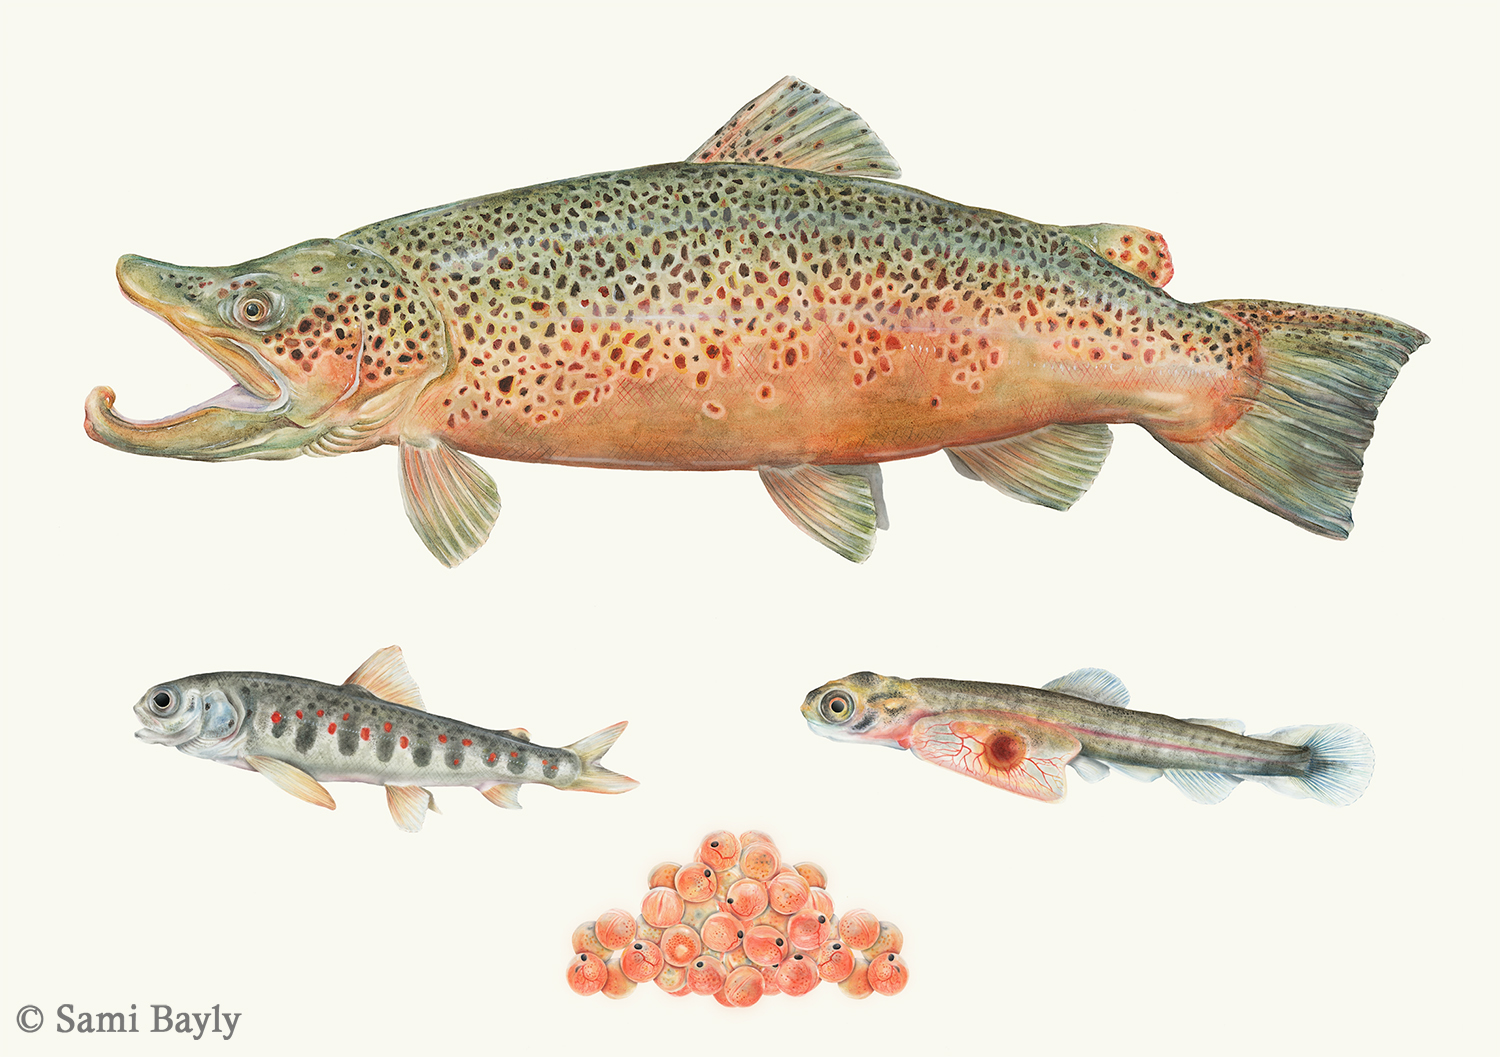 Life Cycle of a Brown Trout